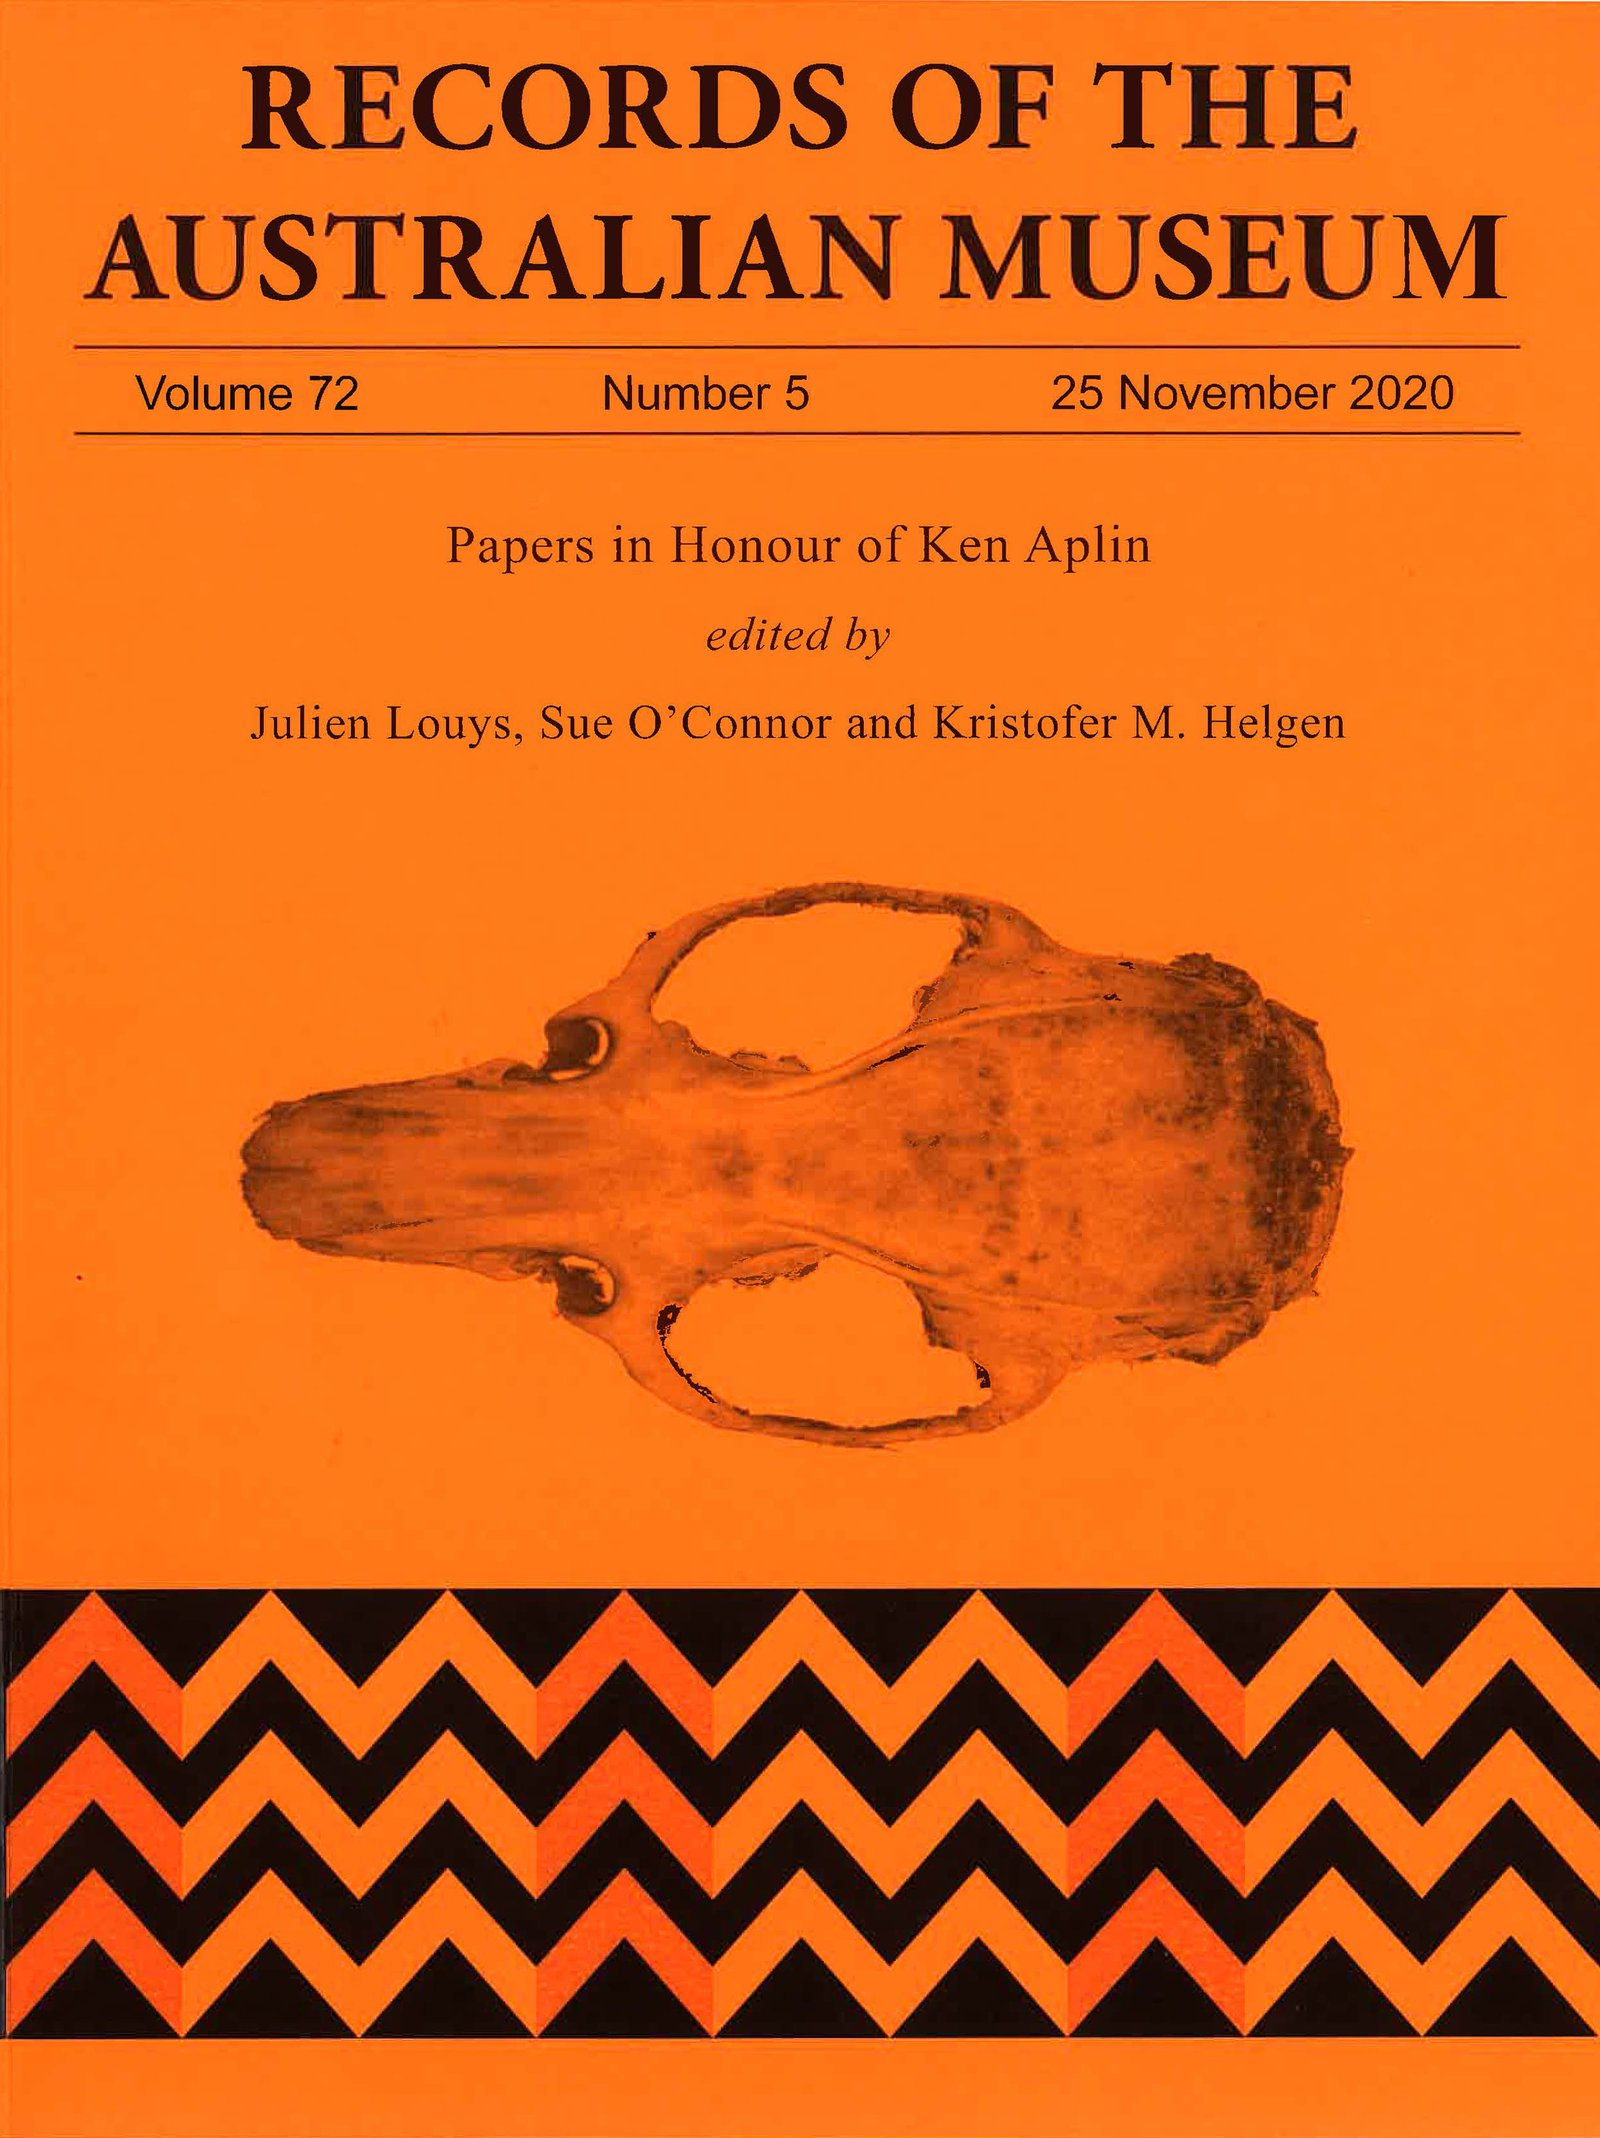 Cover image of Records of the Australian Museum Louys, O'Connor & Helgen. 2020. Rec. Aust. Mus. 72(5). Image includes the skull of Rattus detentus.